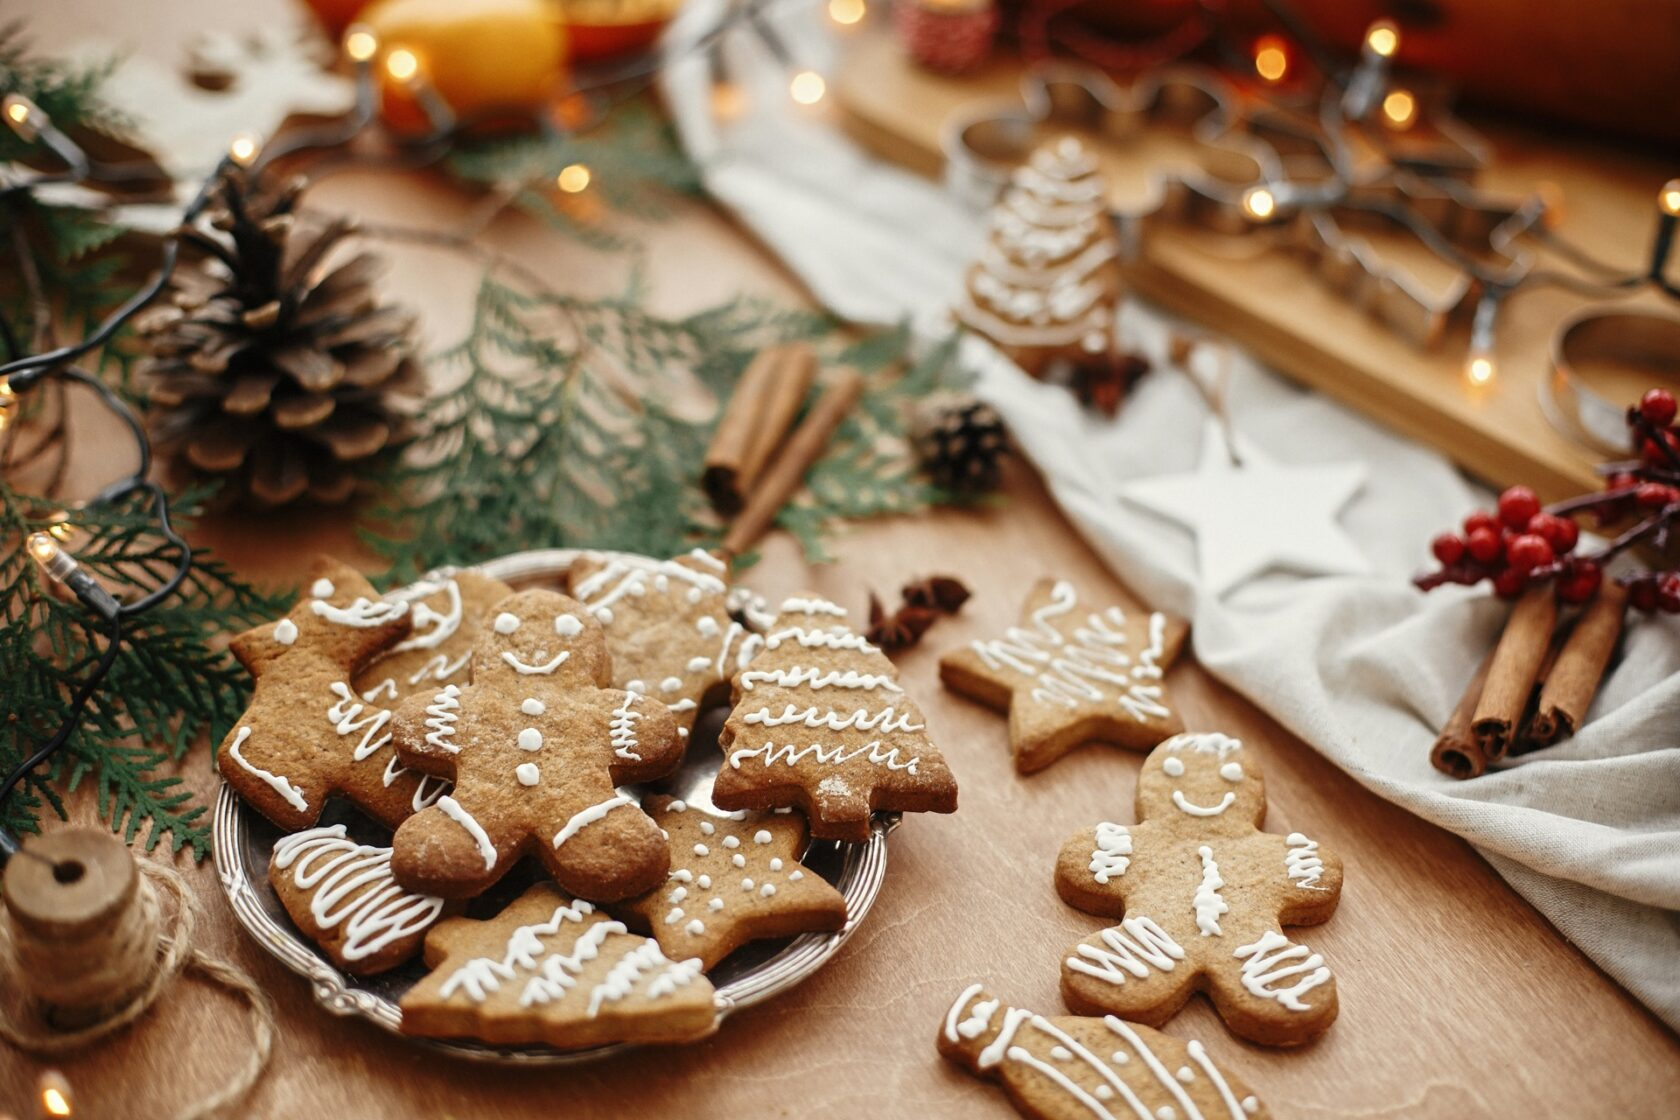 Crafting natural Christmas decorations with gingerbread